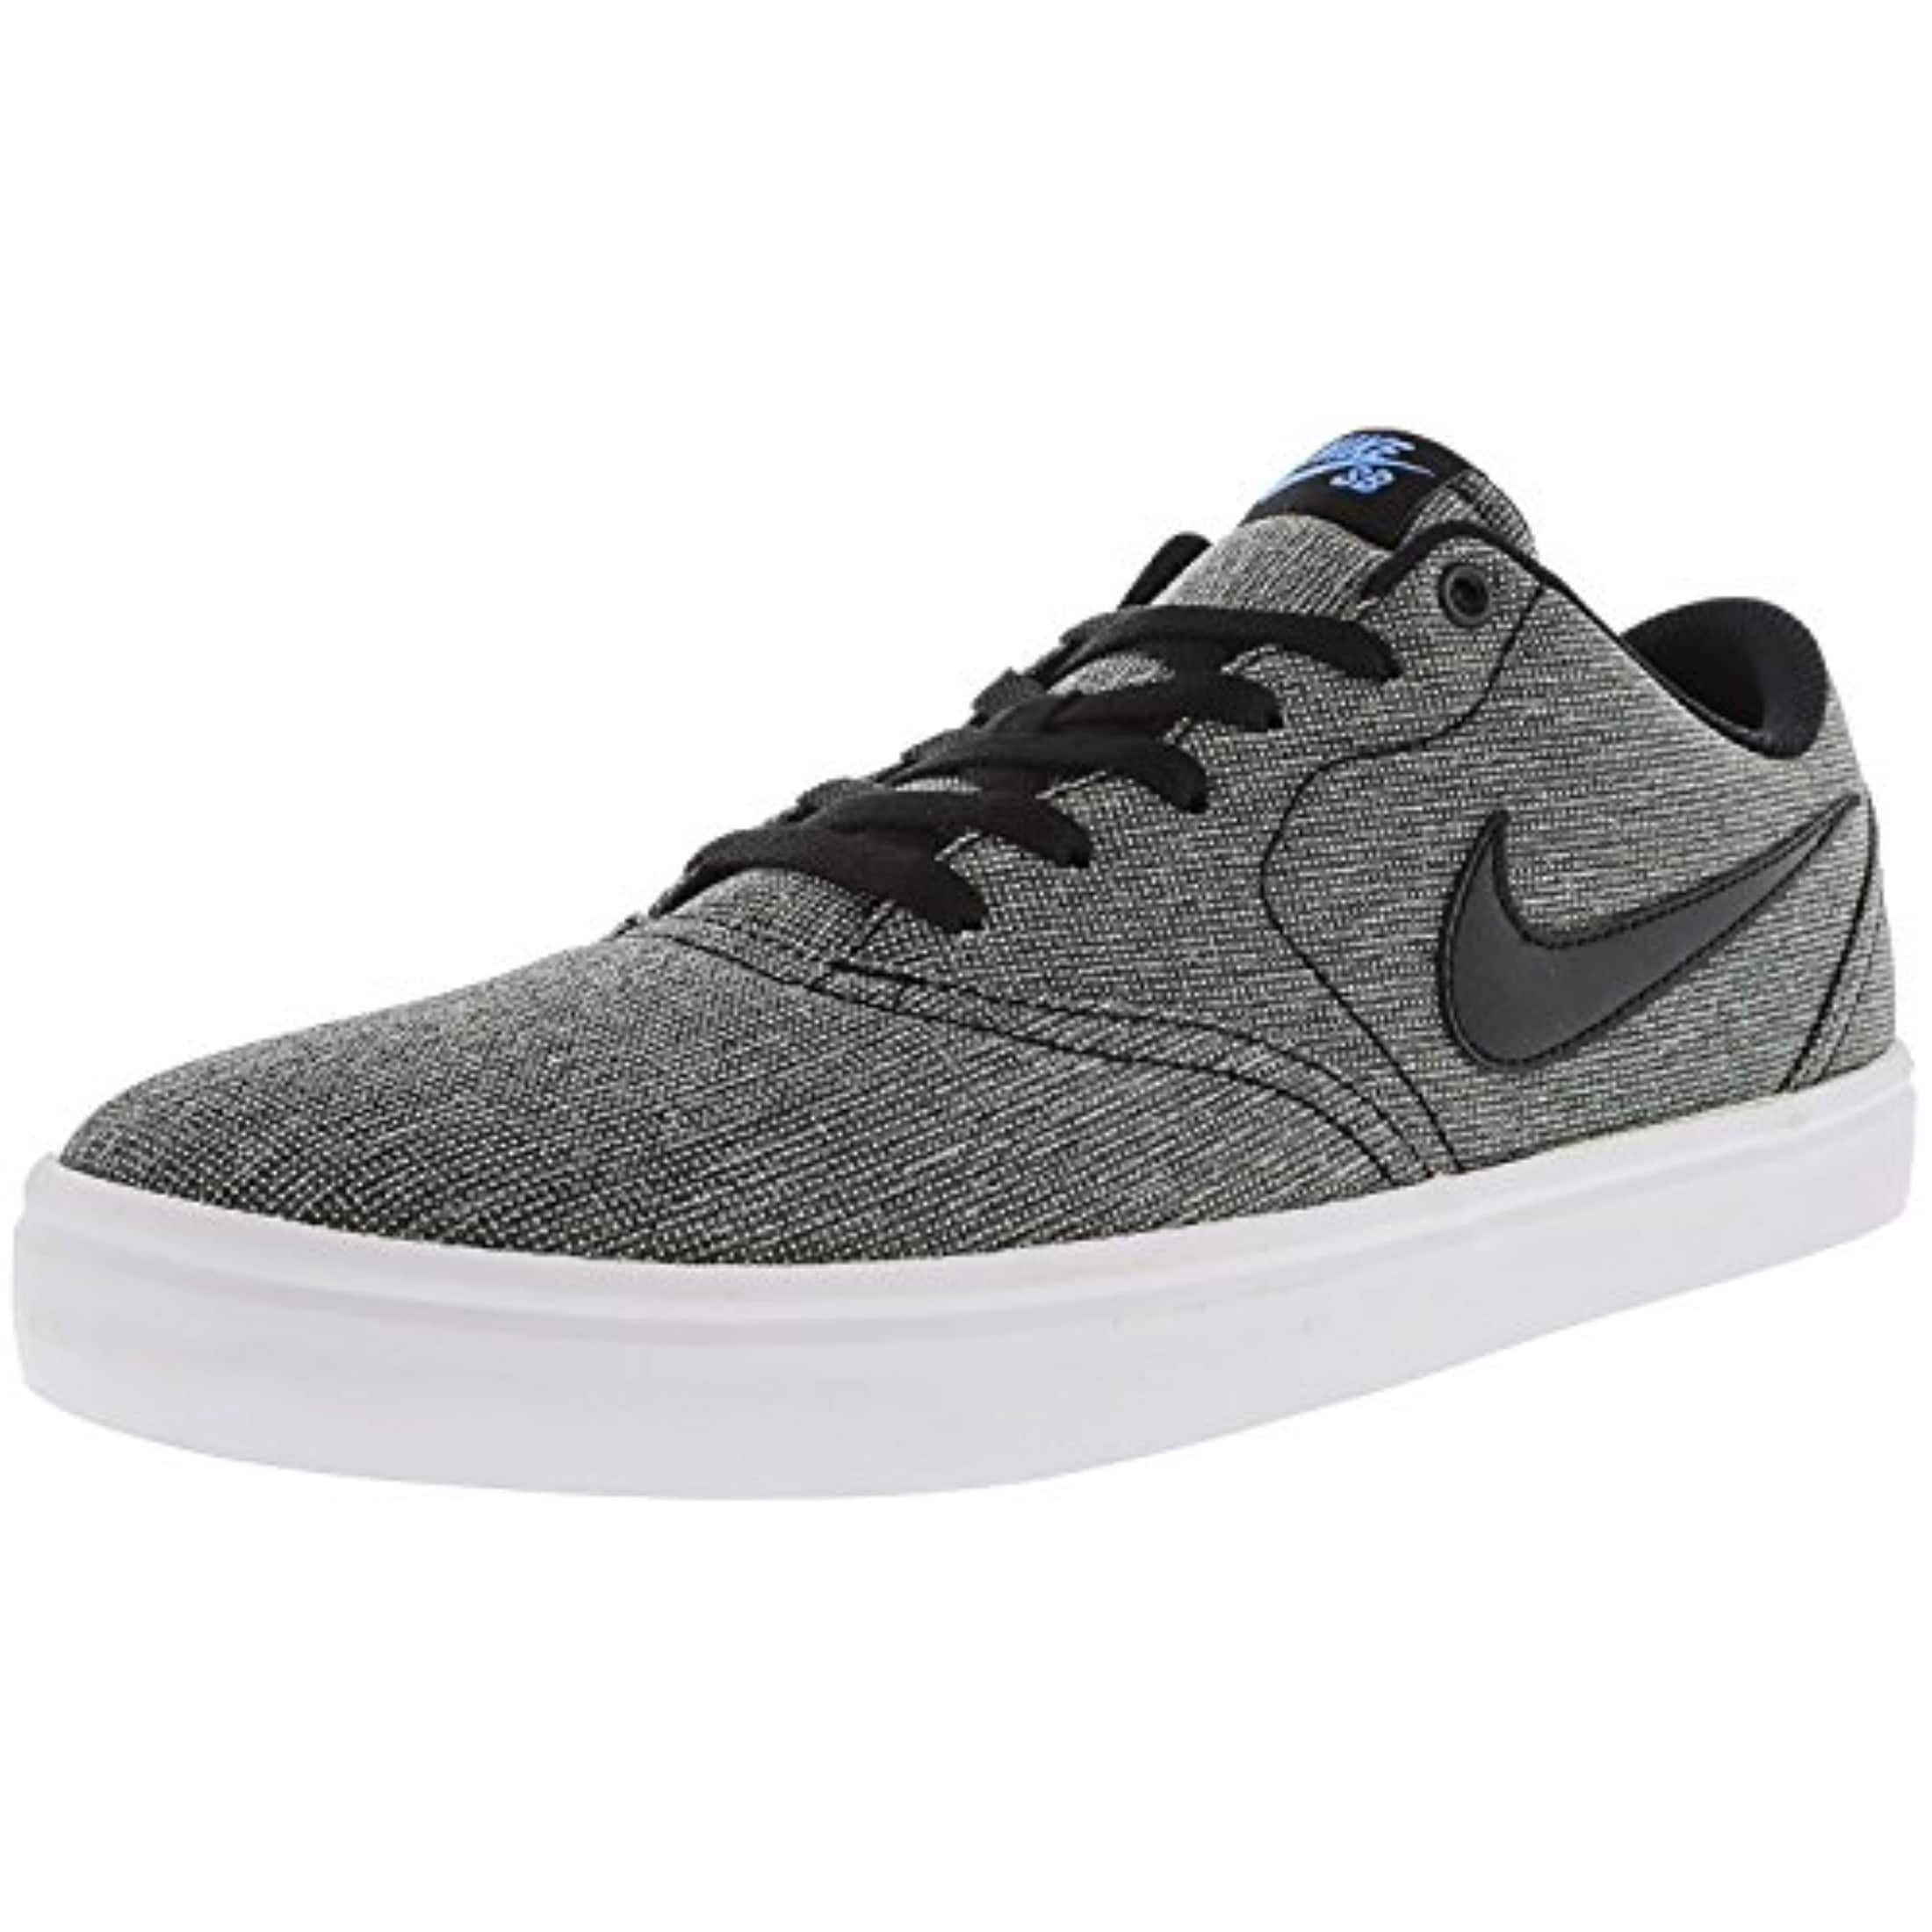 brand new ec06f 5c6ba Shop Nike Men s Sb Check Solarsoft Canvas Skate Shoe (12 D(M) Us,  Grey Black Photo Blue Black) - Free Shipping Today - Overstock - 27126119